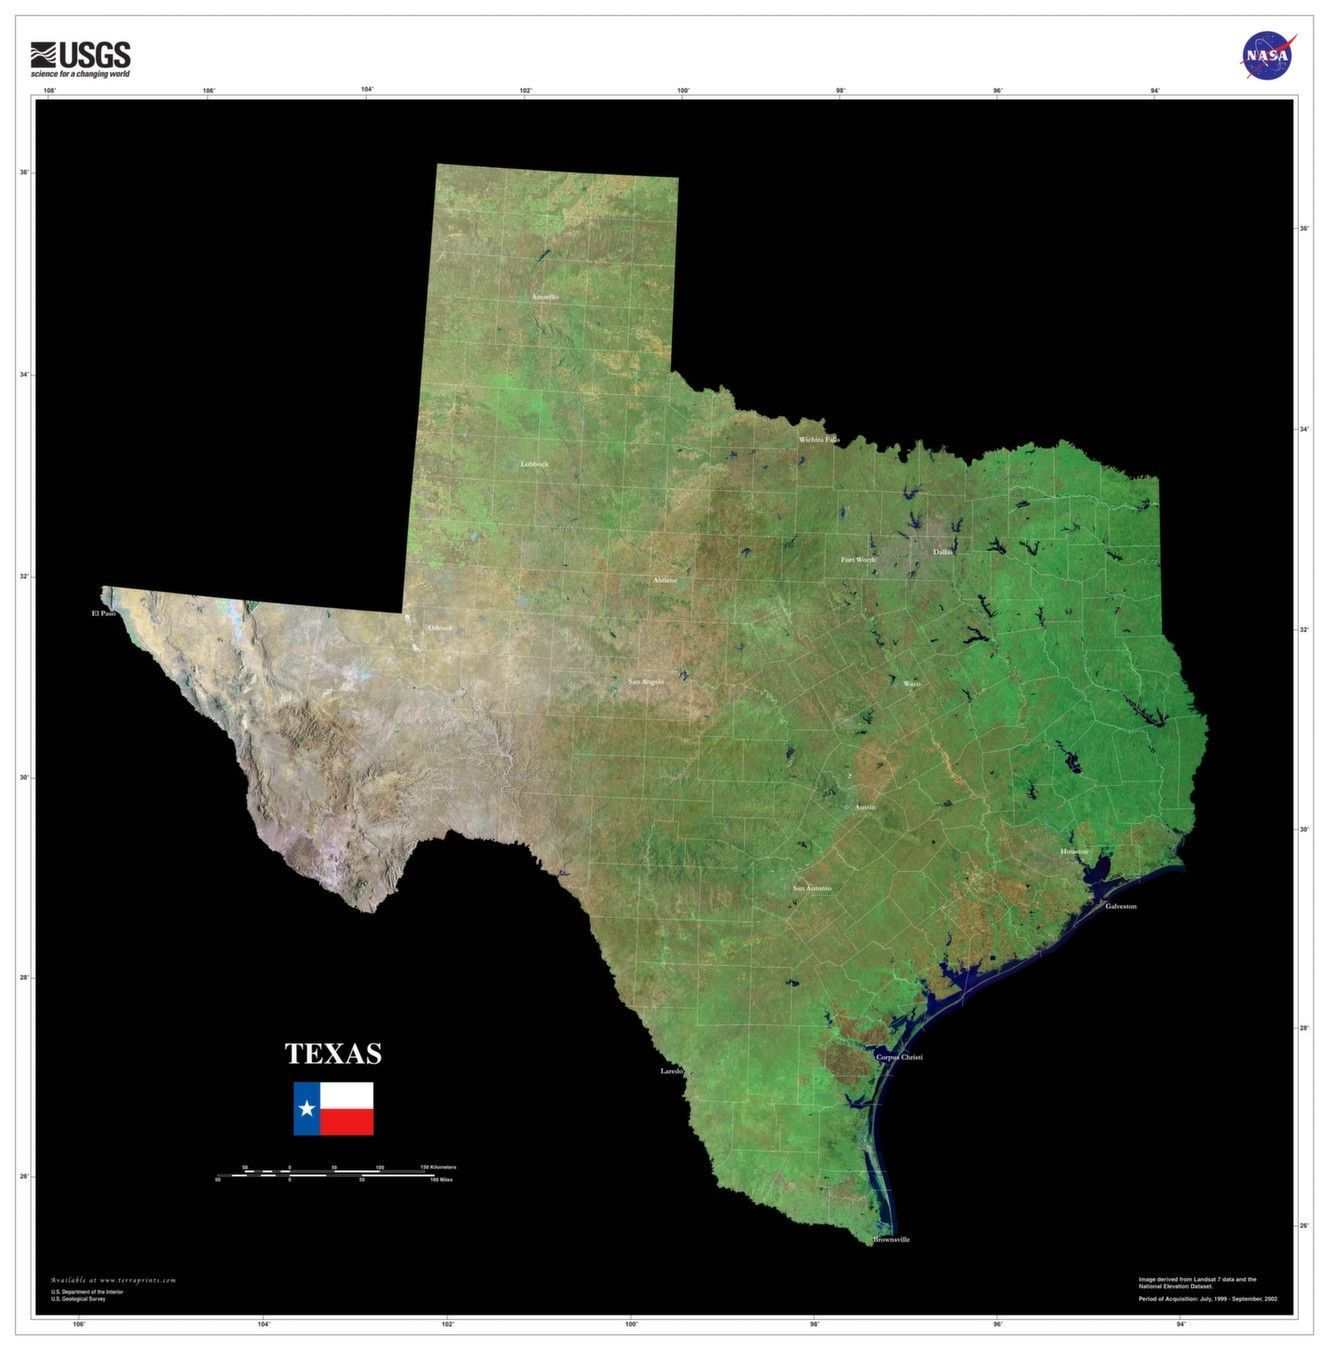 Texas Satellite Map The Texas Satellite Imagery State Map Poster | Map poster, Texas